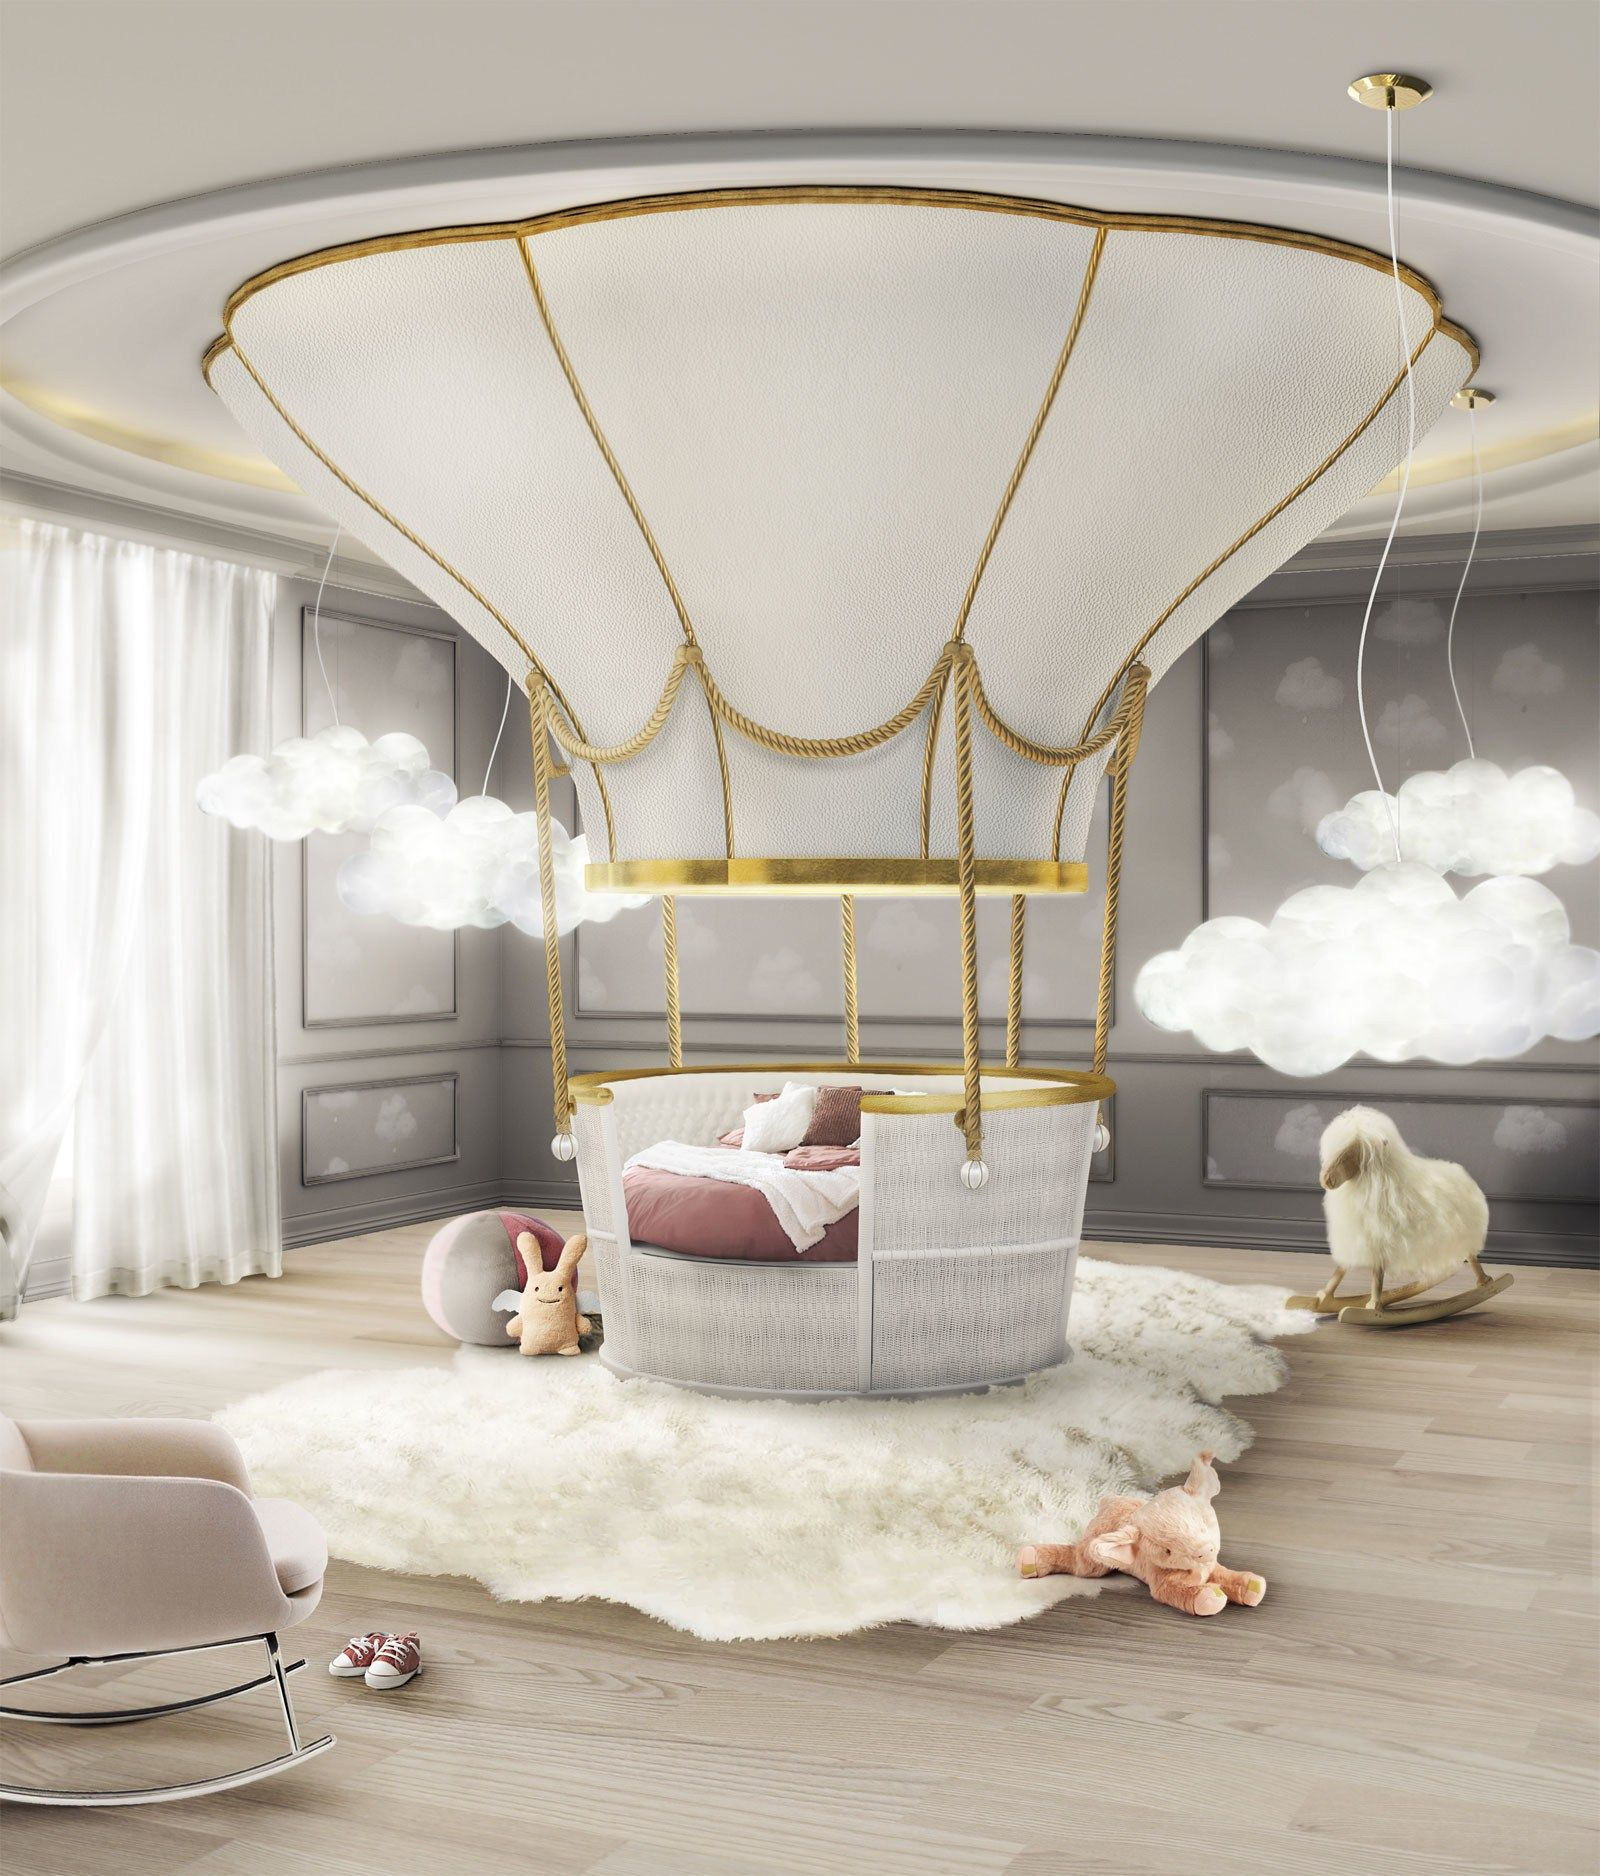 Creative Kids Bedroom Fantasy Beds Designs That Are Full Of Ideas